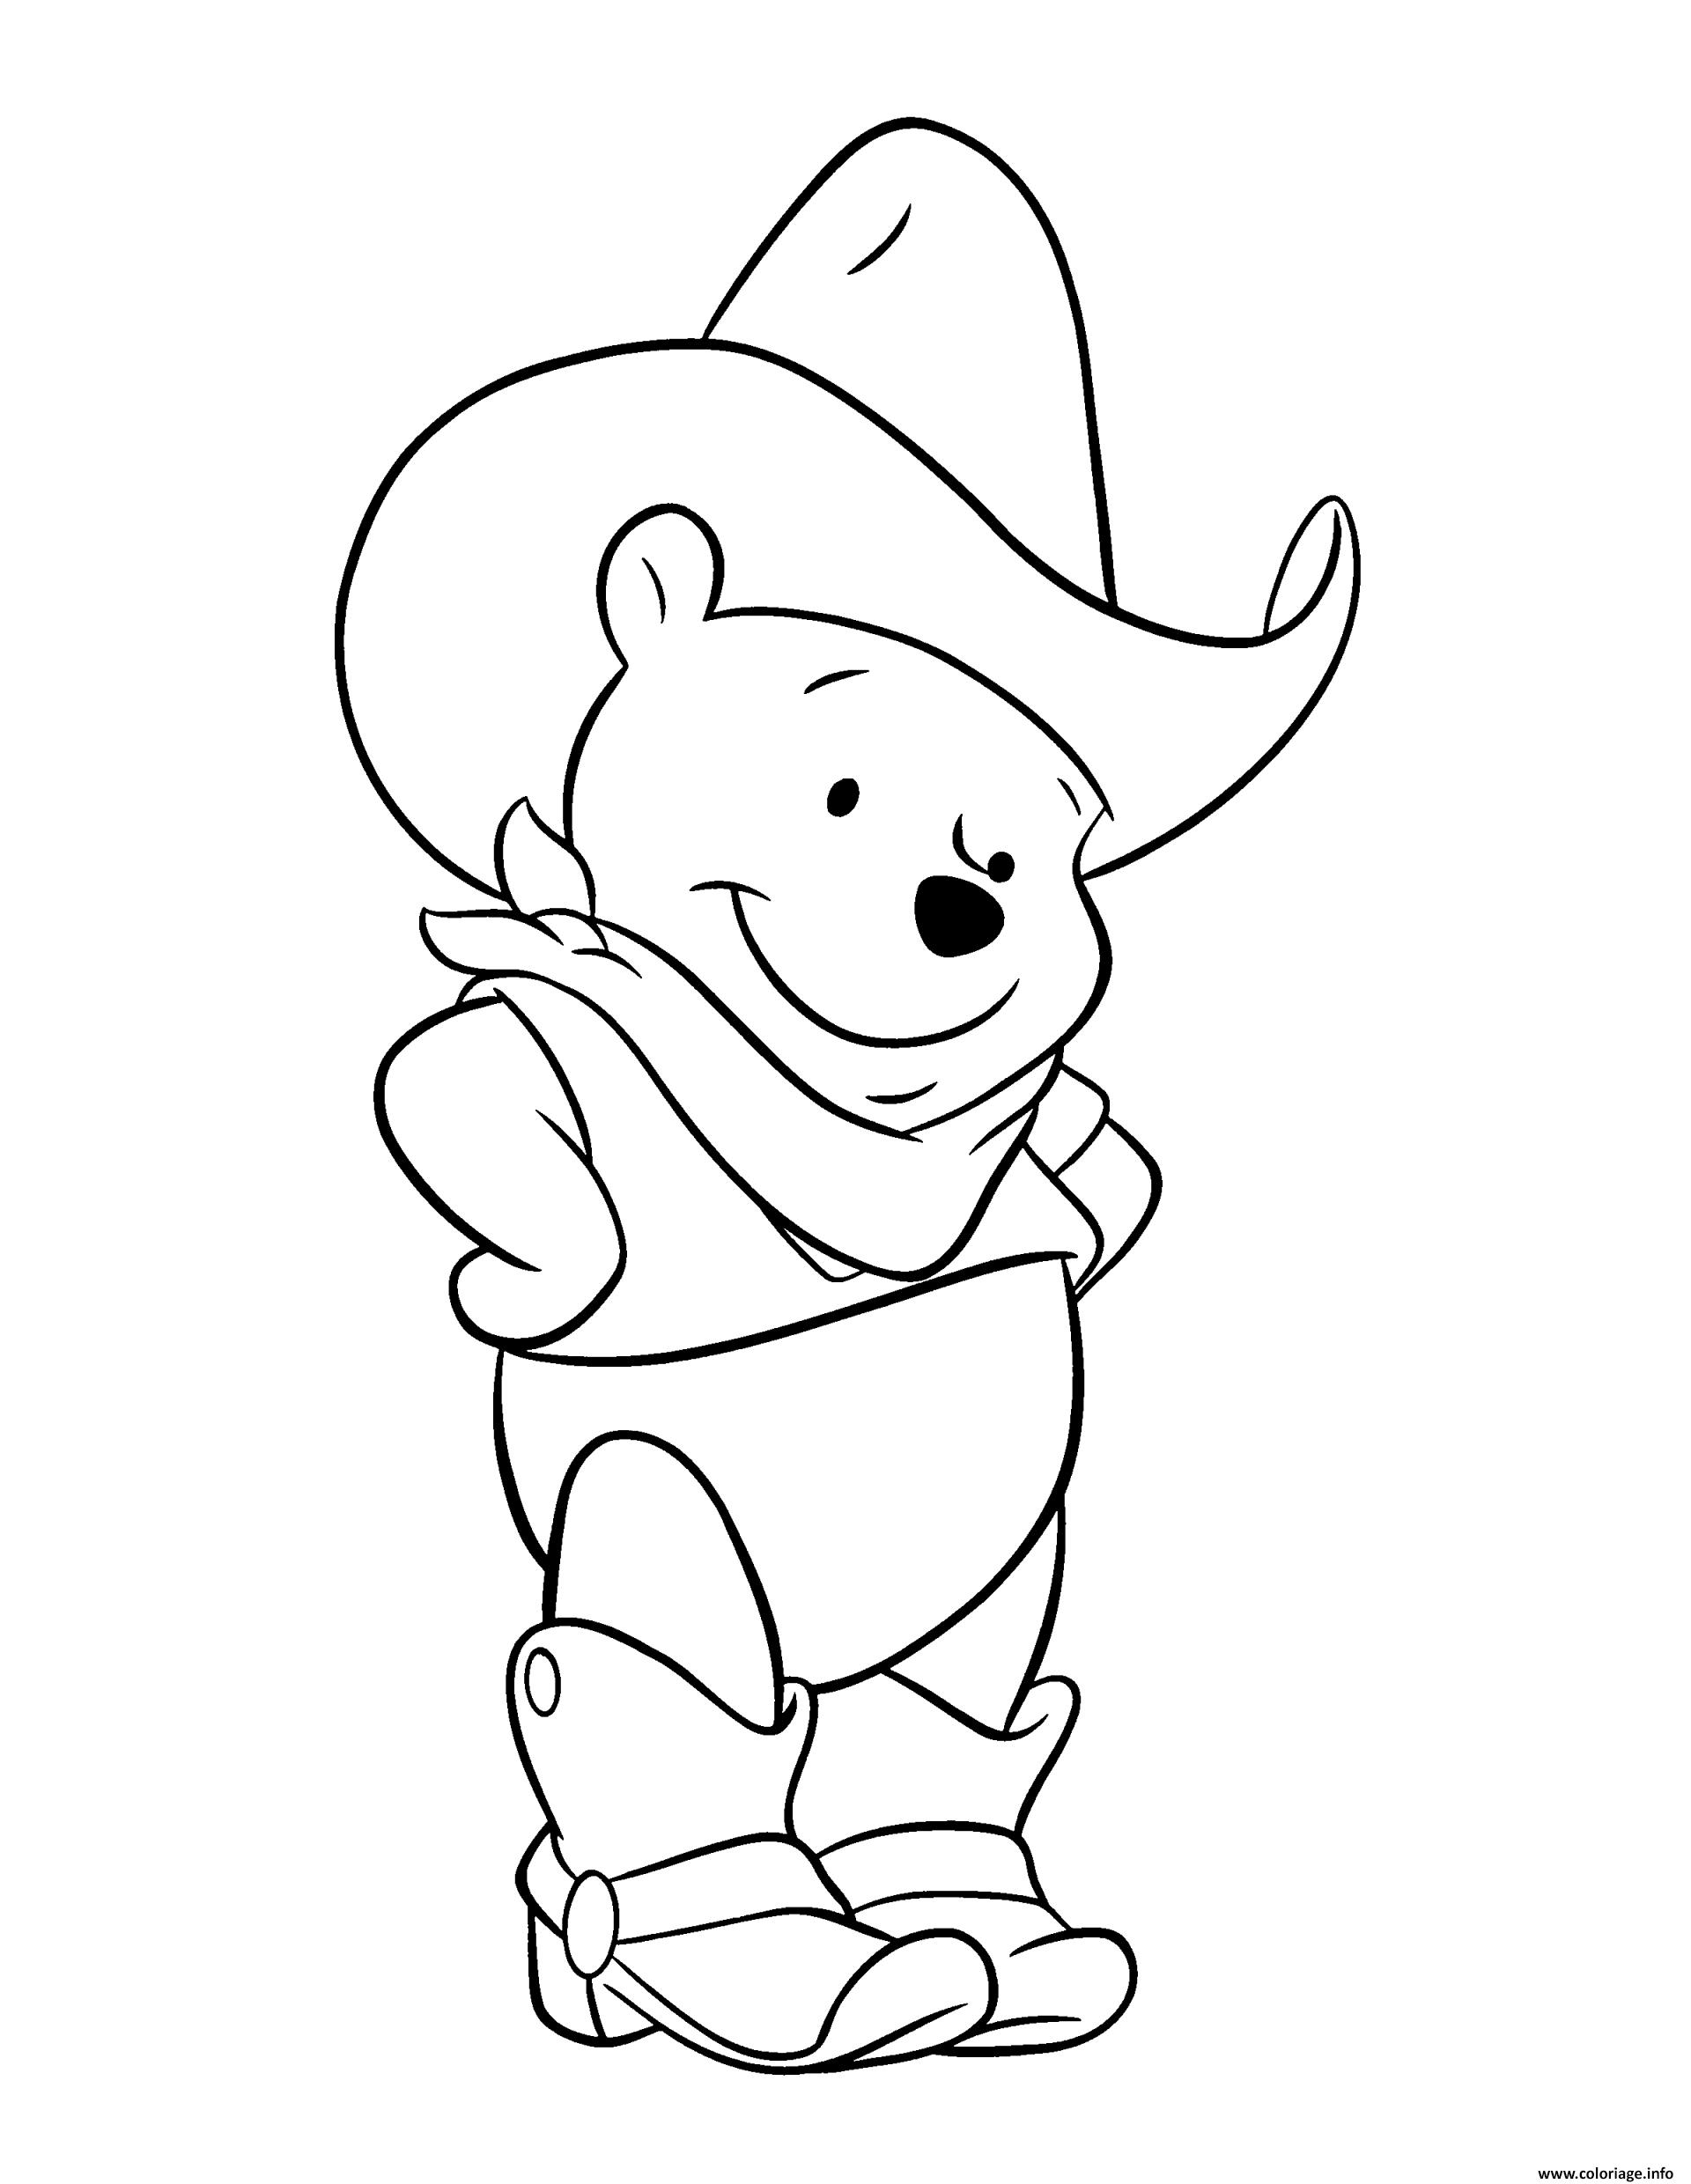 Coloriage Winnie De Pooh Ourson En Mode Cowboy Dessin destiné Coloriage De Mode À Imprimer